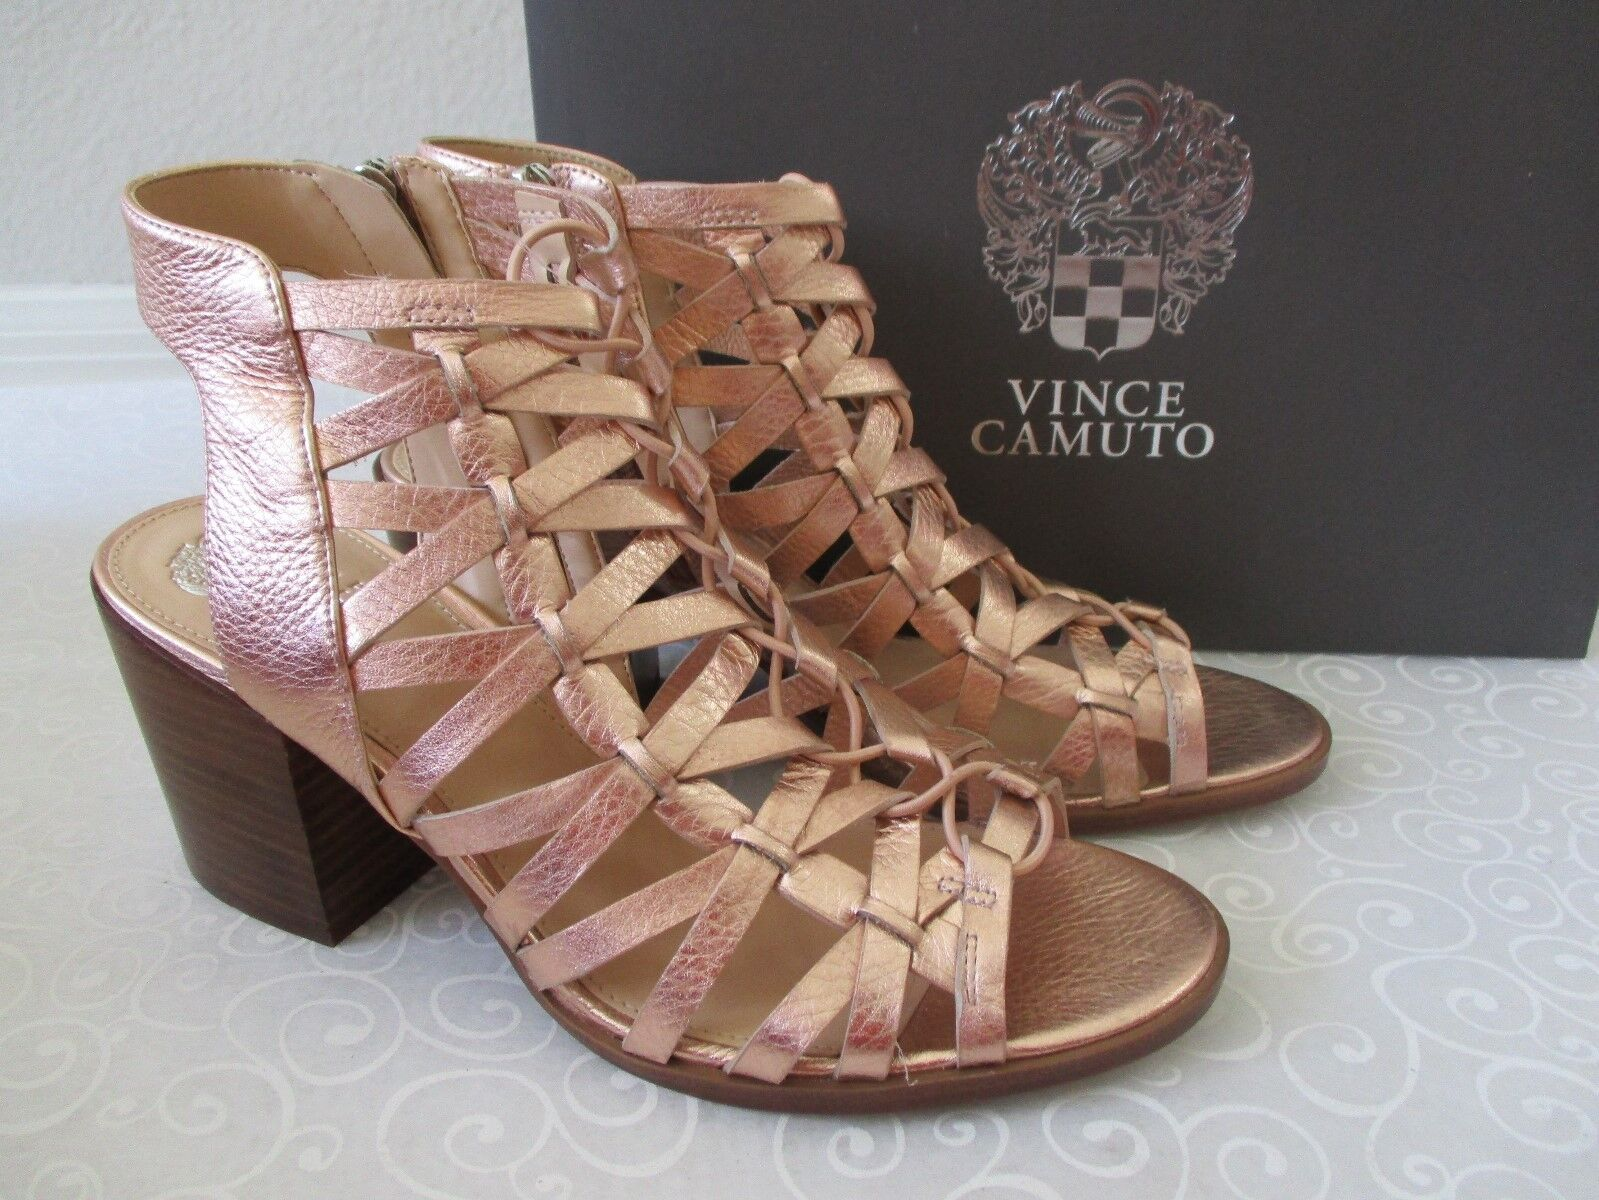 VINCE CAMUTO LIVIAN ROSE GOLD LACE UP OPEN TOE LEATHER SHOES SIZE 9 1/2 M - NEW